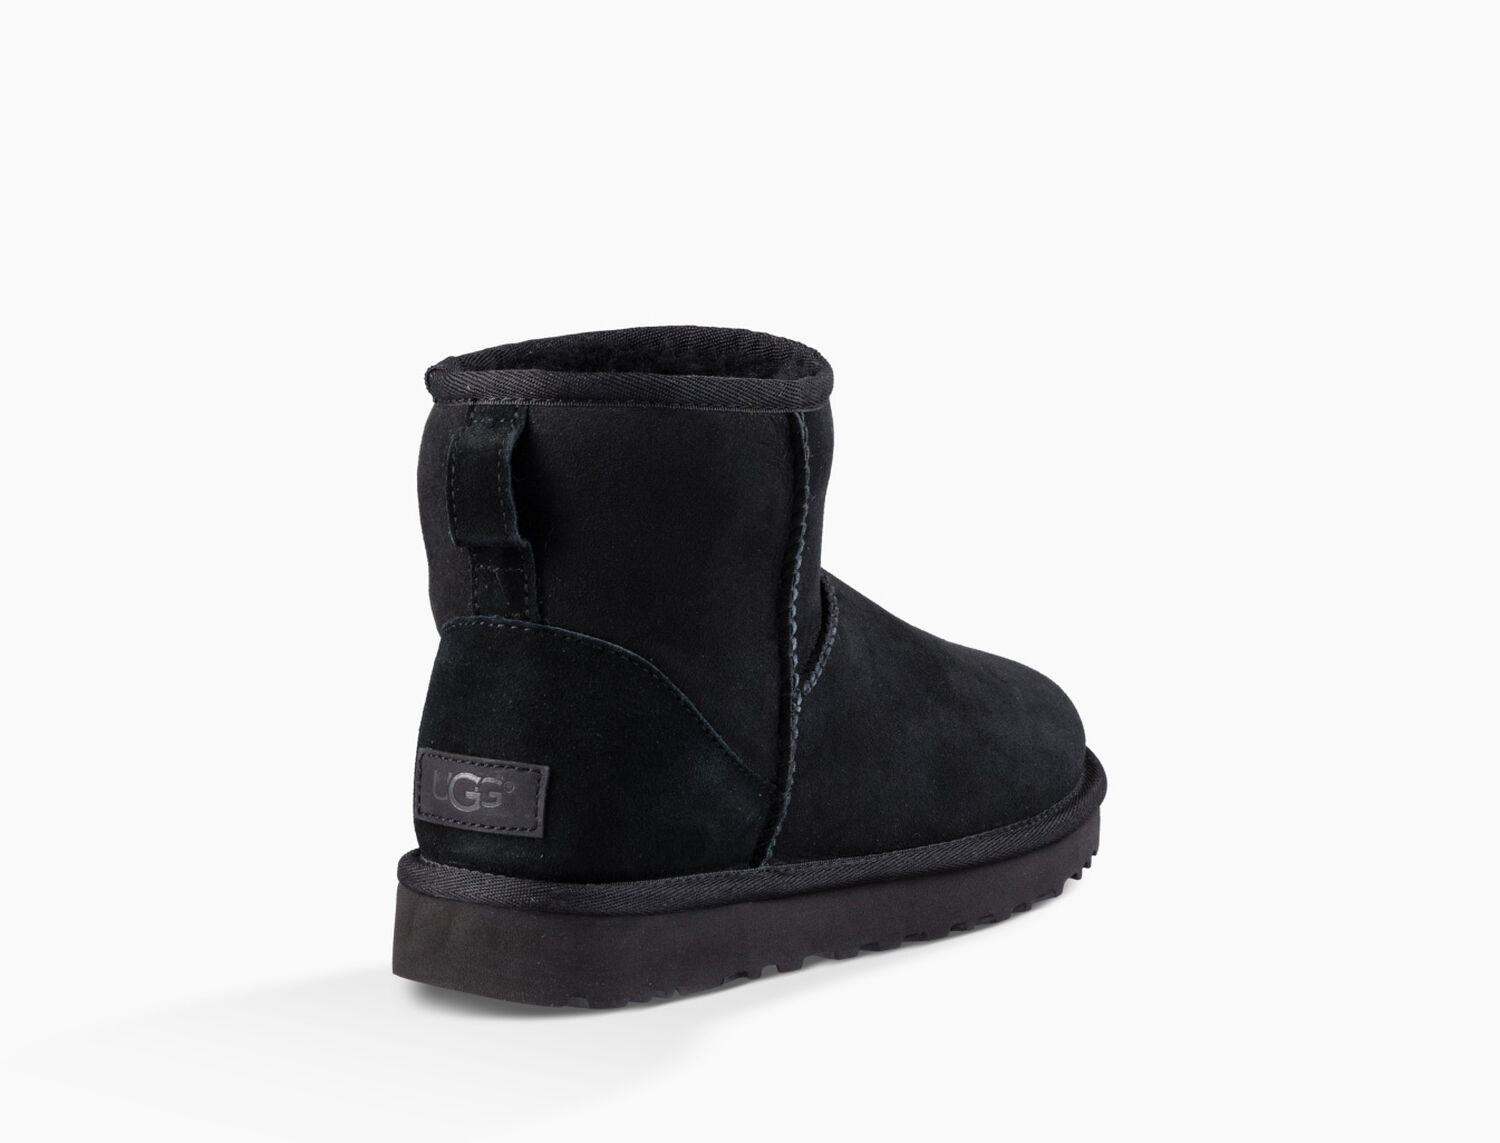 UGG Boots, Shoes & More. UGG Australia is a brand that needs no introduction; instantly recognisable and effortlessly stylish, people know when you're wearing a pair of UGG boots.